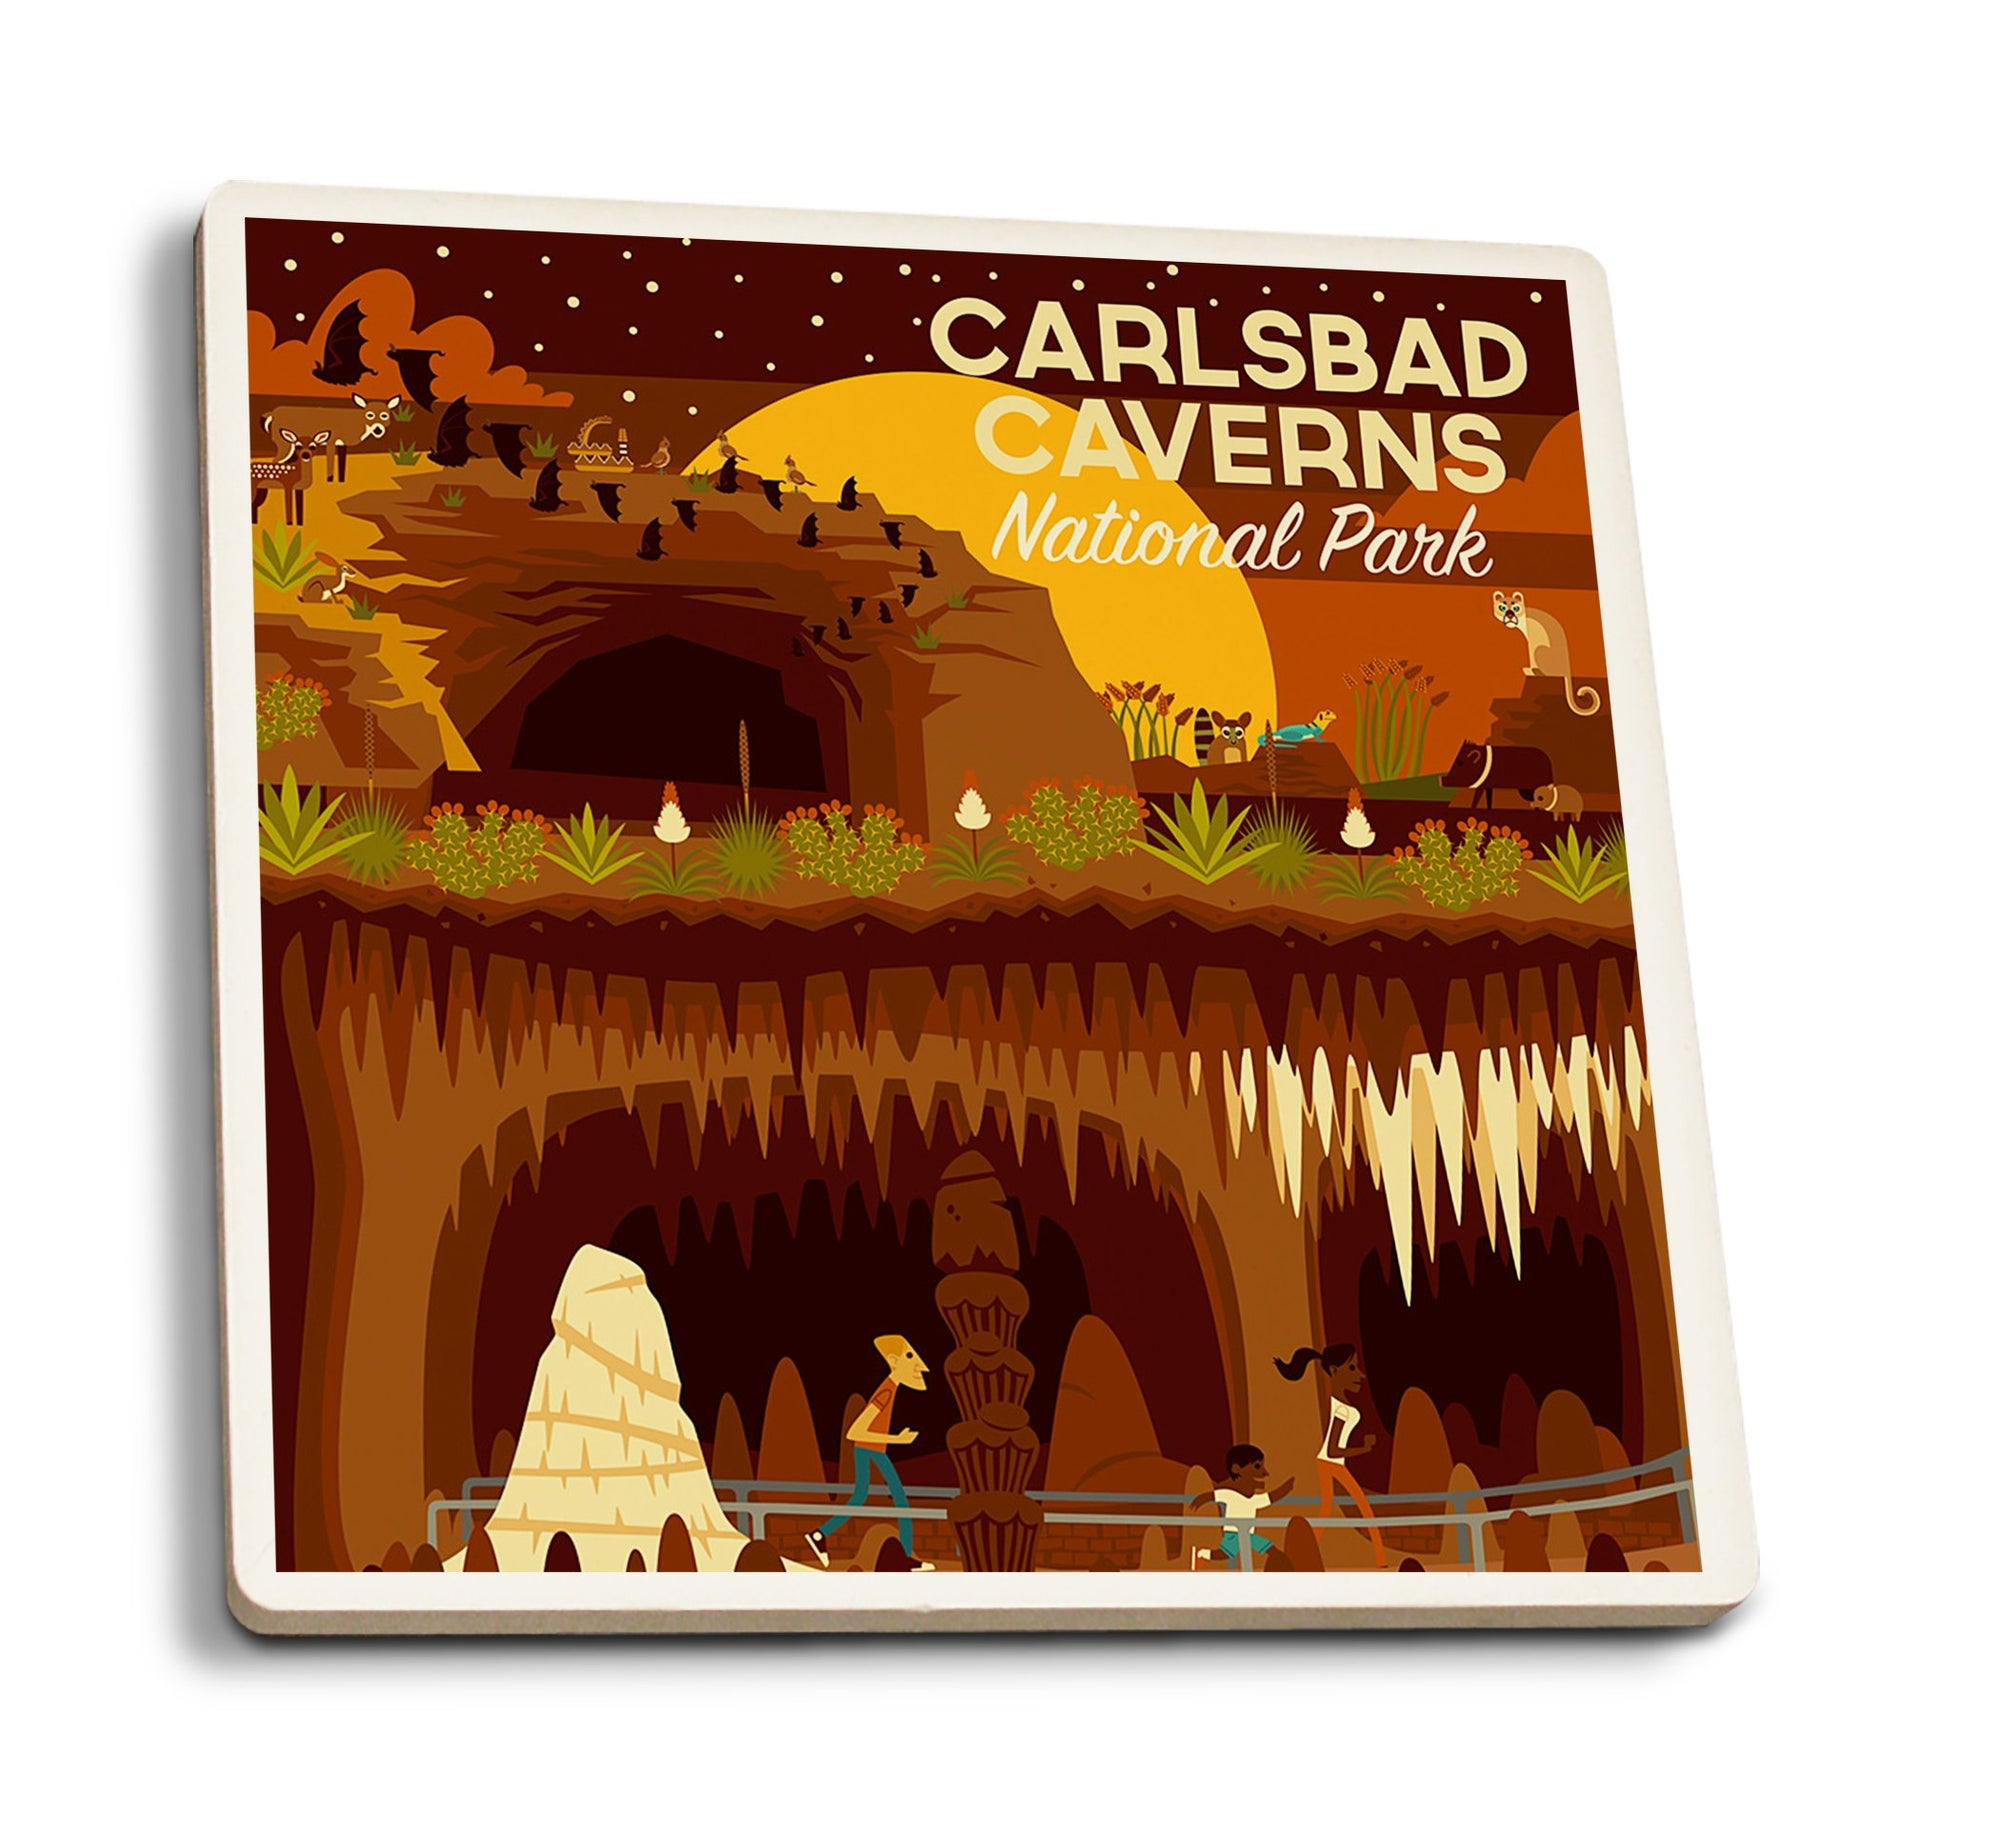 Coaster (Carlsbad Caverns National Park, New Mexico - Geometric - Lantern Press Artwork) Coaster Nightingale Boutique Coaster Pack